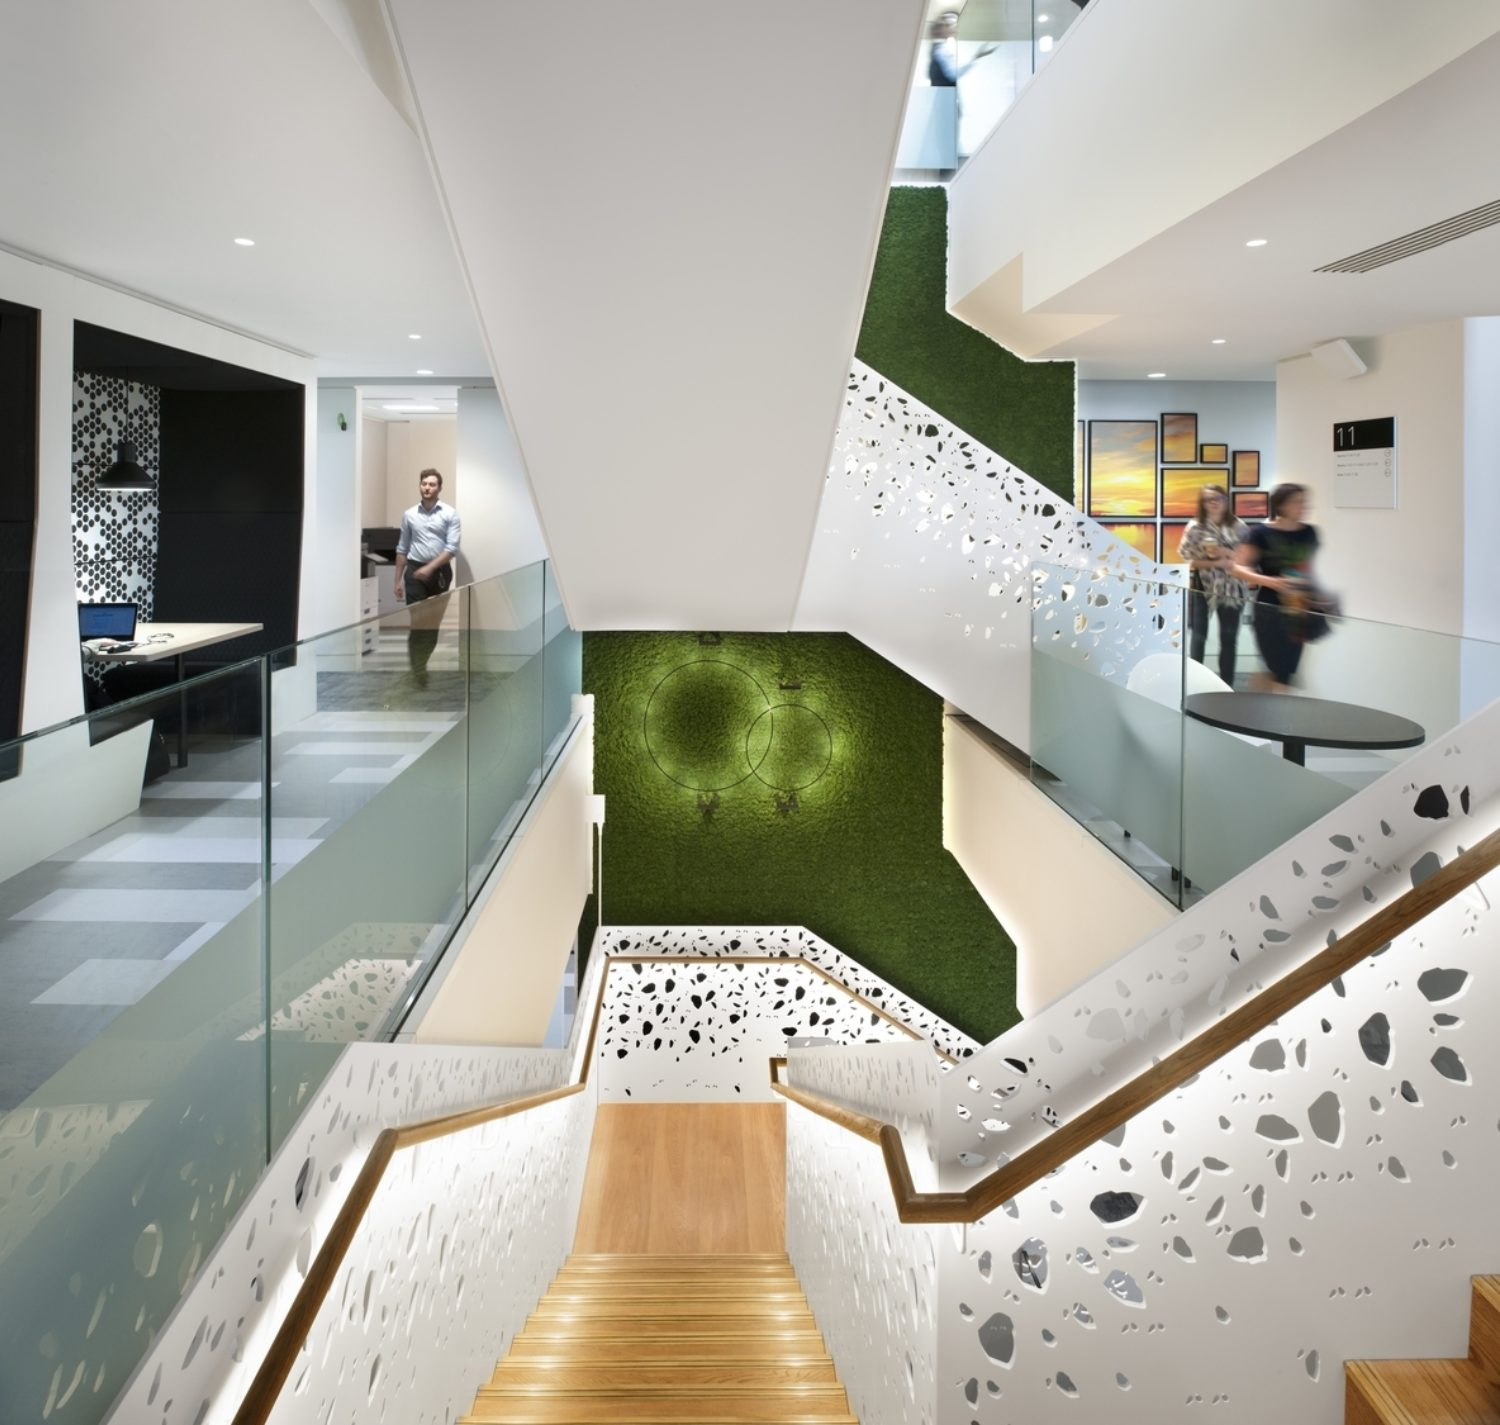 Deloitte staircase with biophilic moss wall